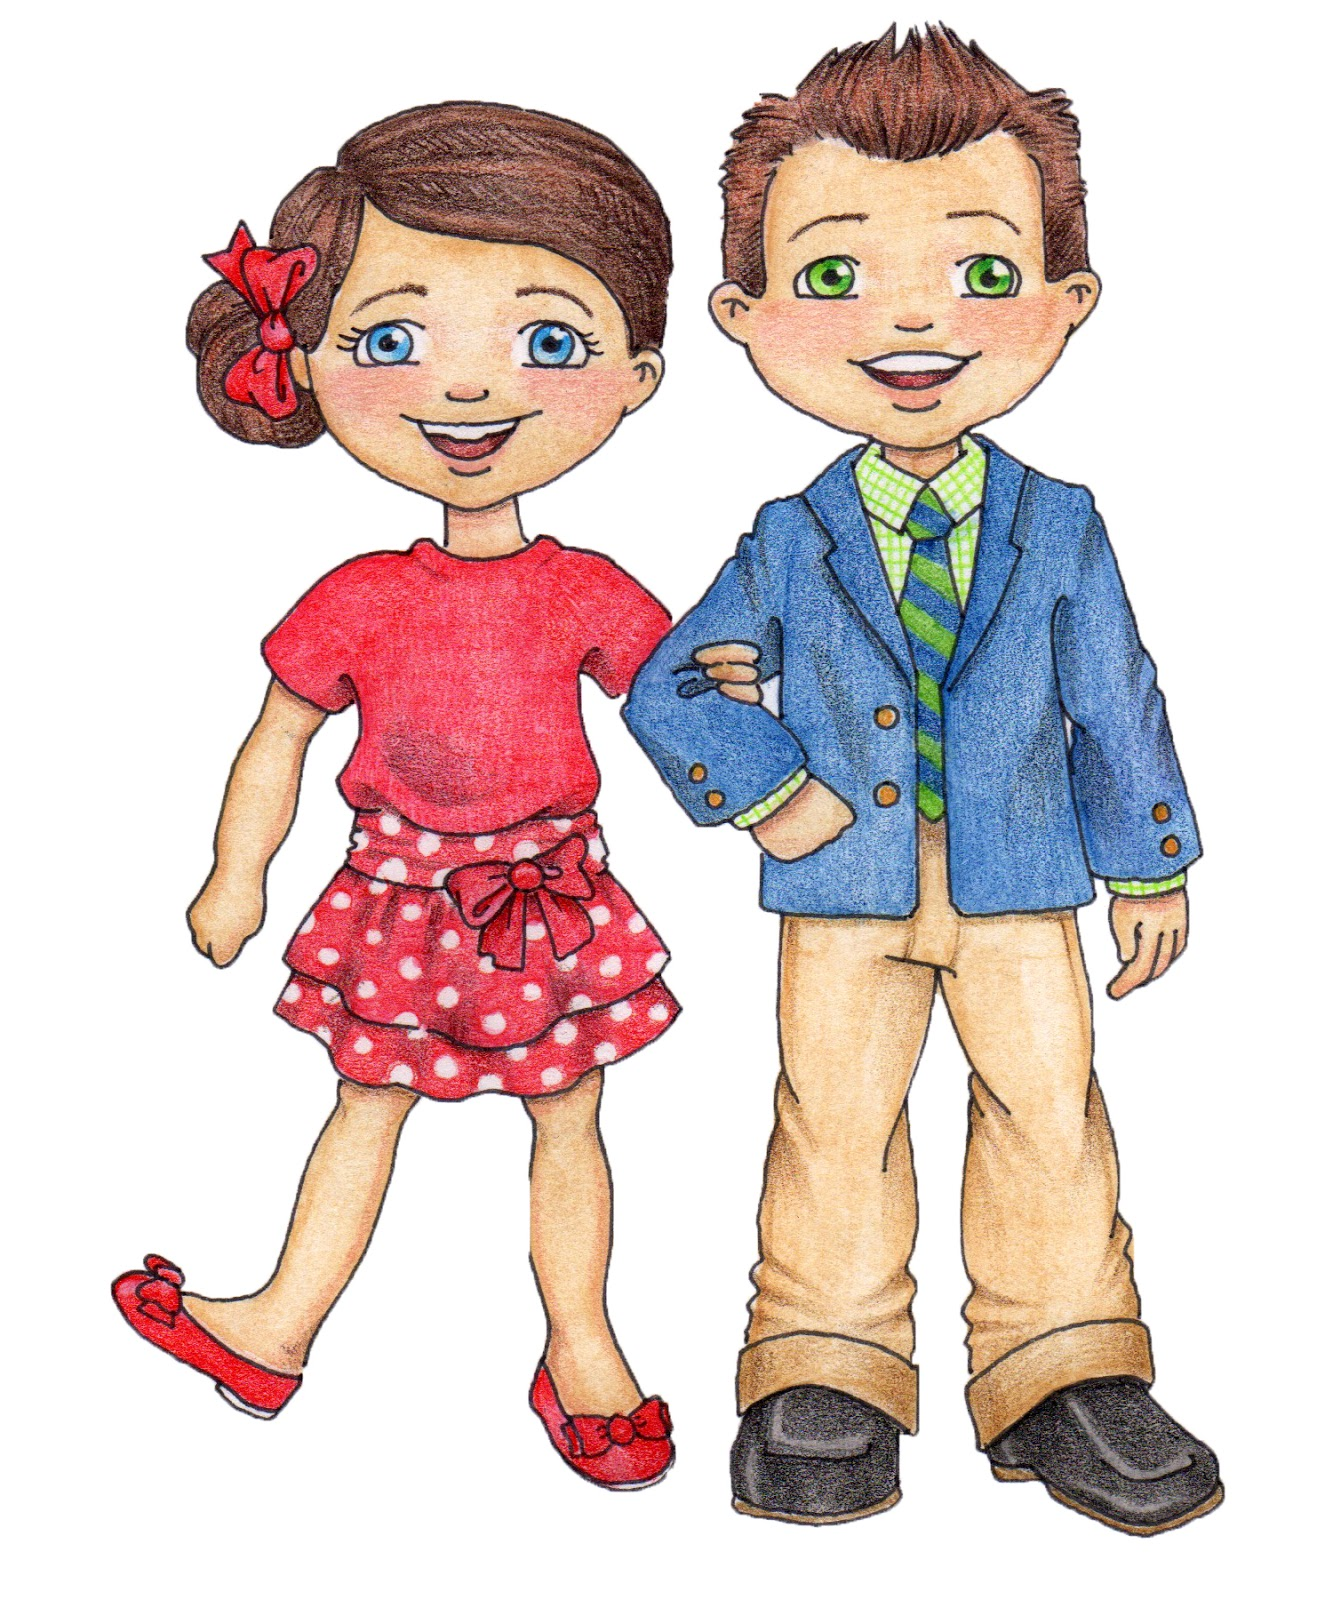 Lds Church Clipart at GetDrawings.com.